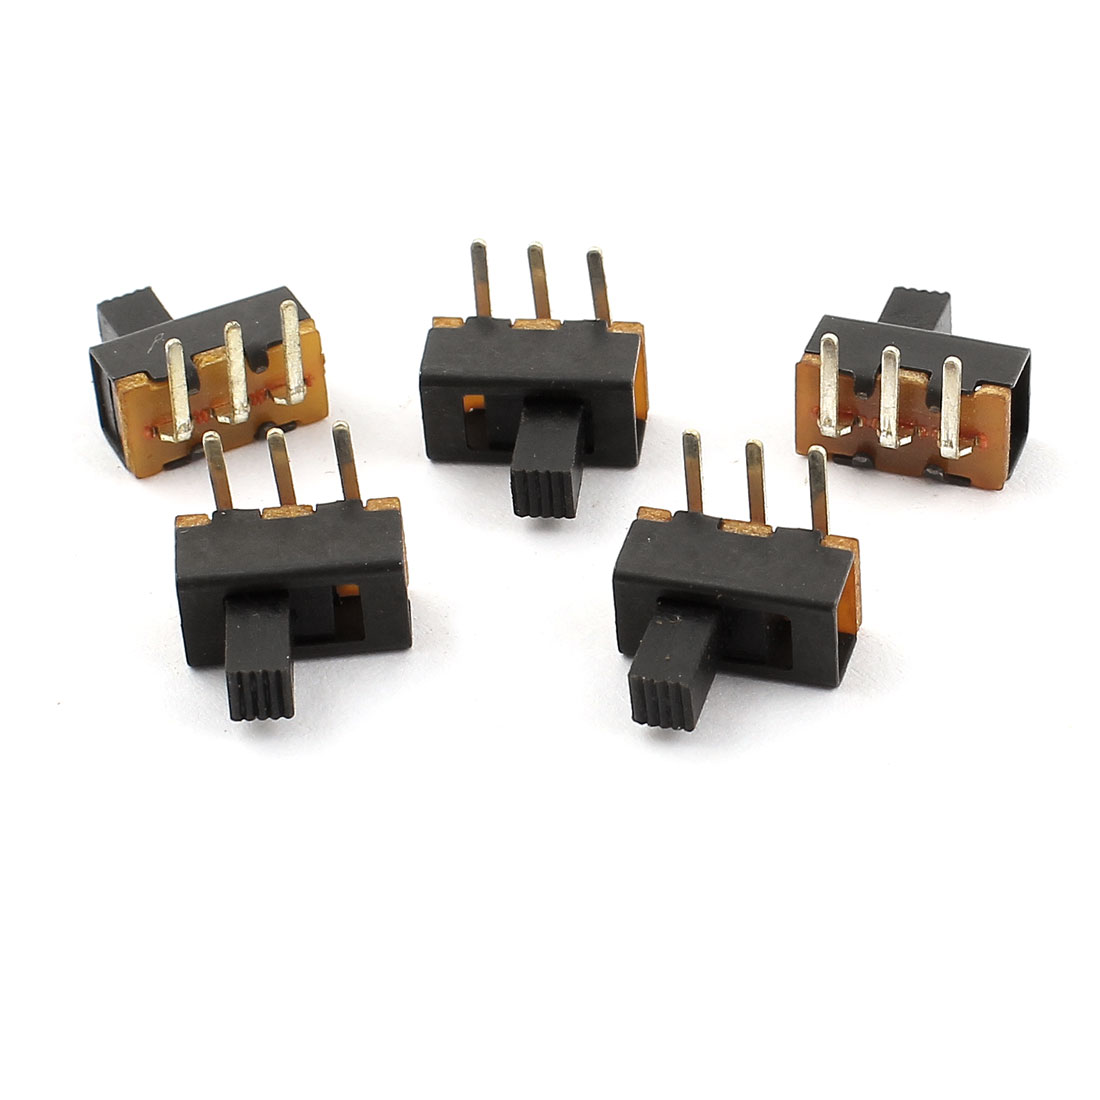 5 Pcs 3Pins PCB Mounted 2 Positions SPDT Vertical Slide Switch ON/OFF